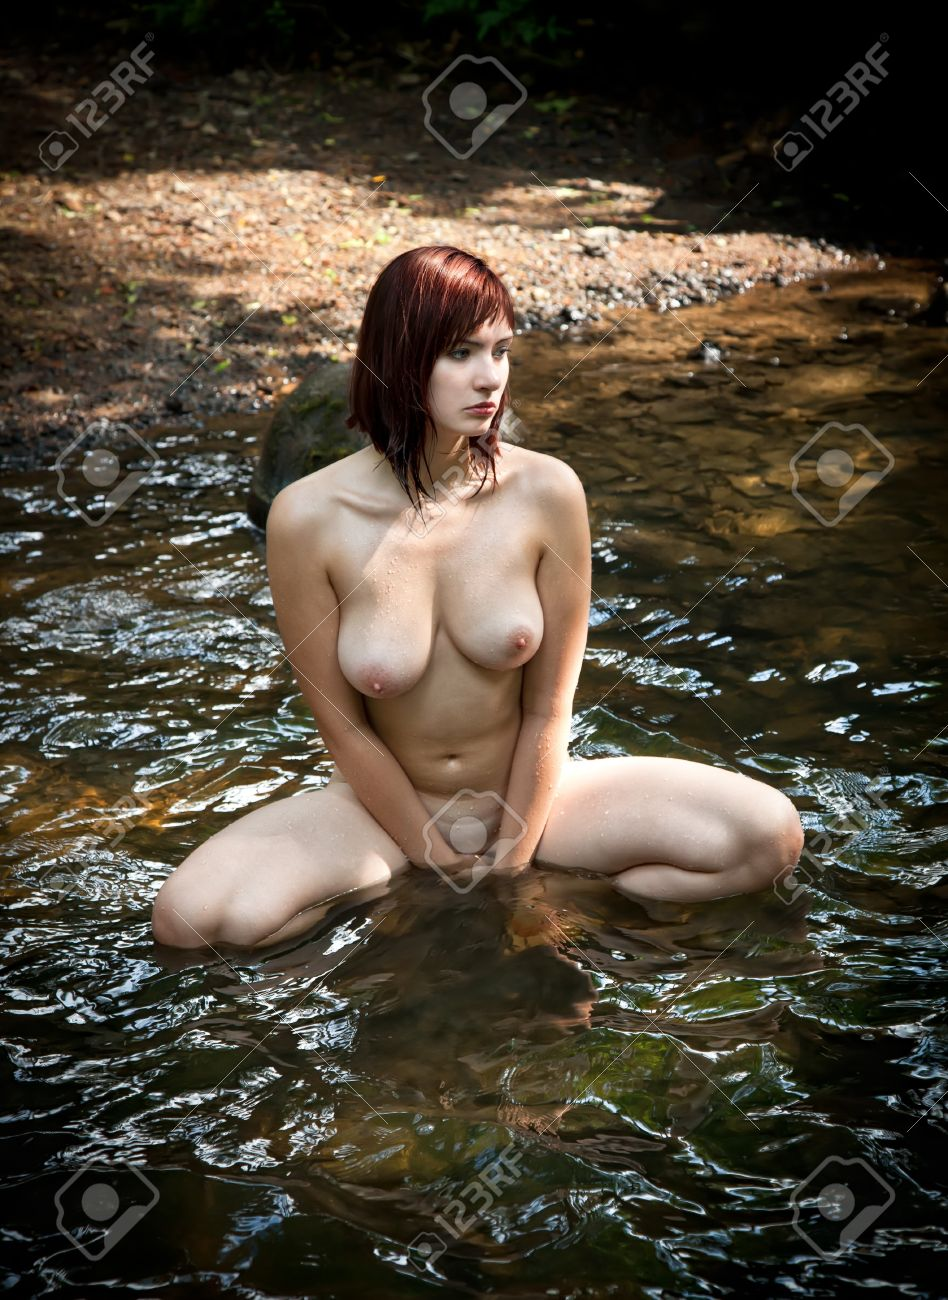 Naked the forest in women Forest porn